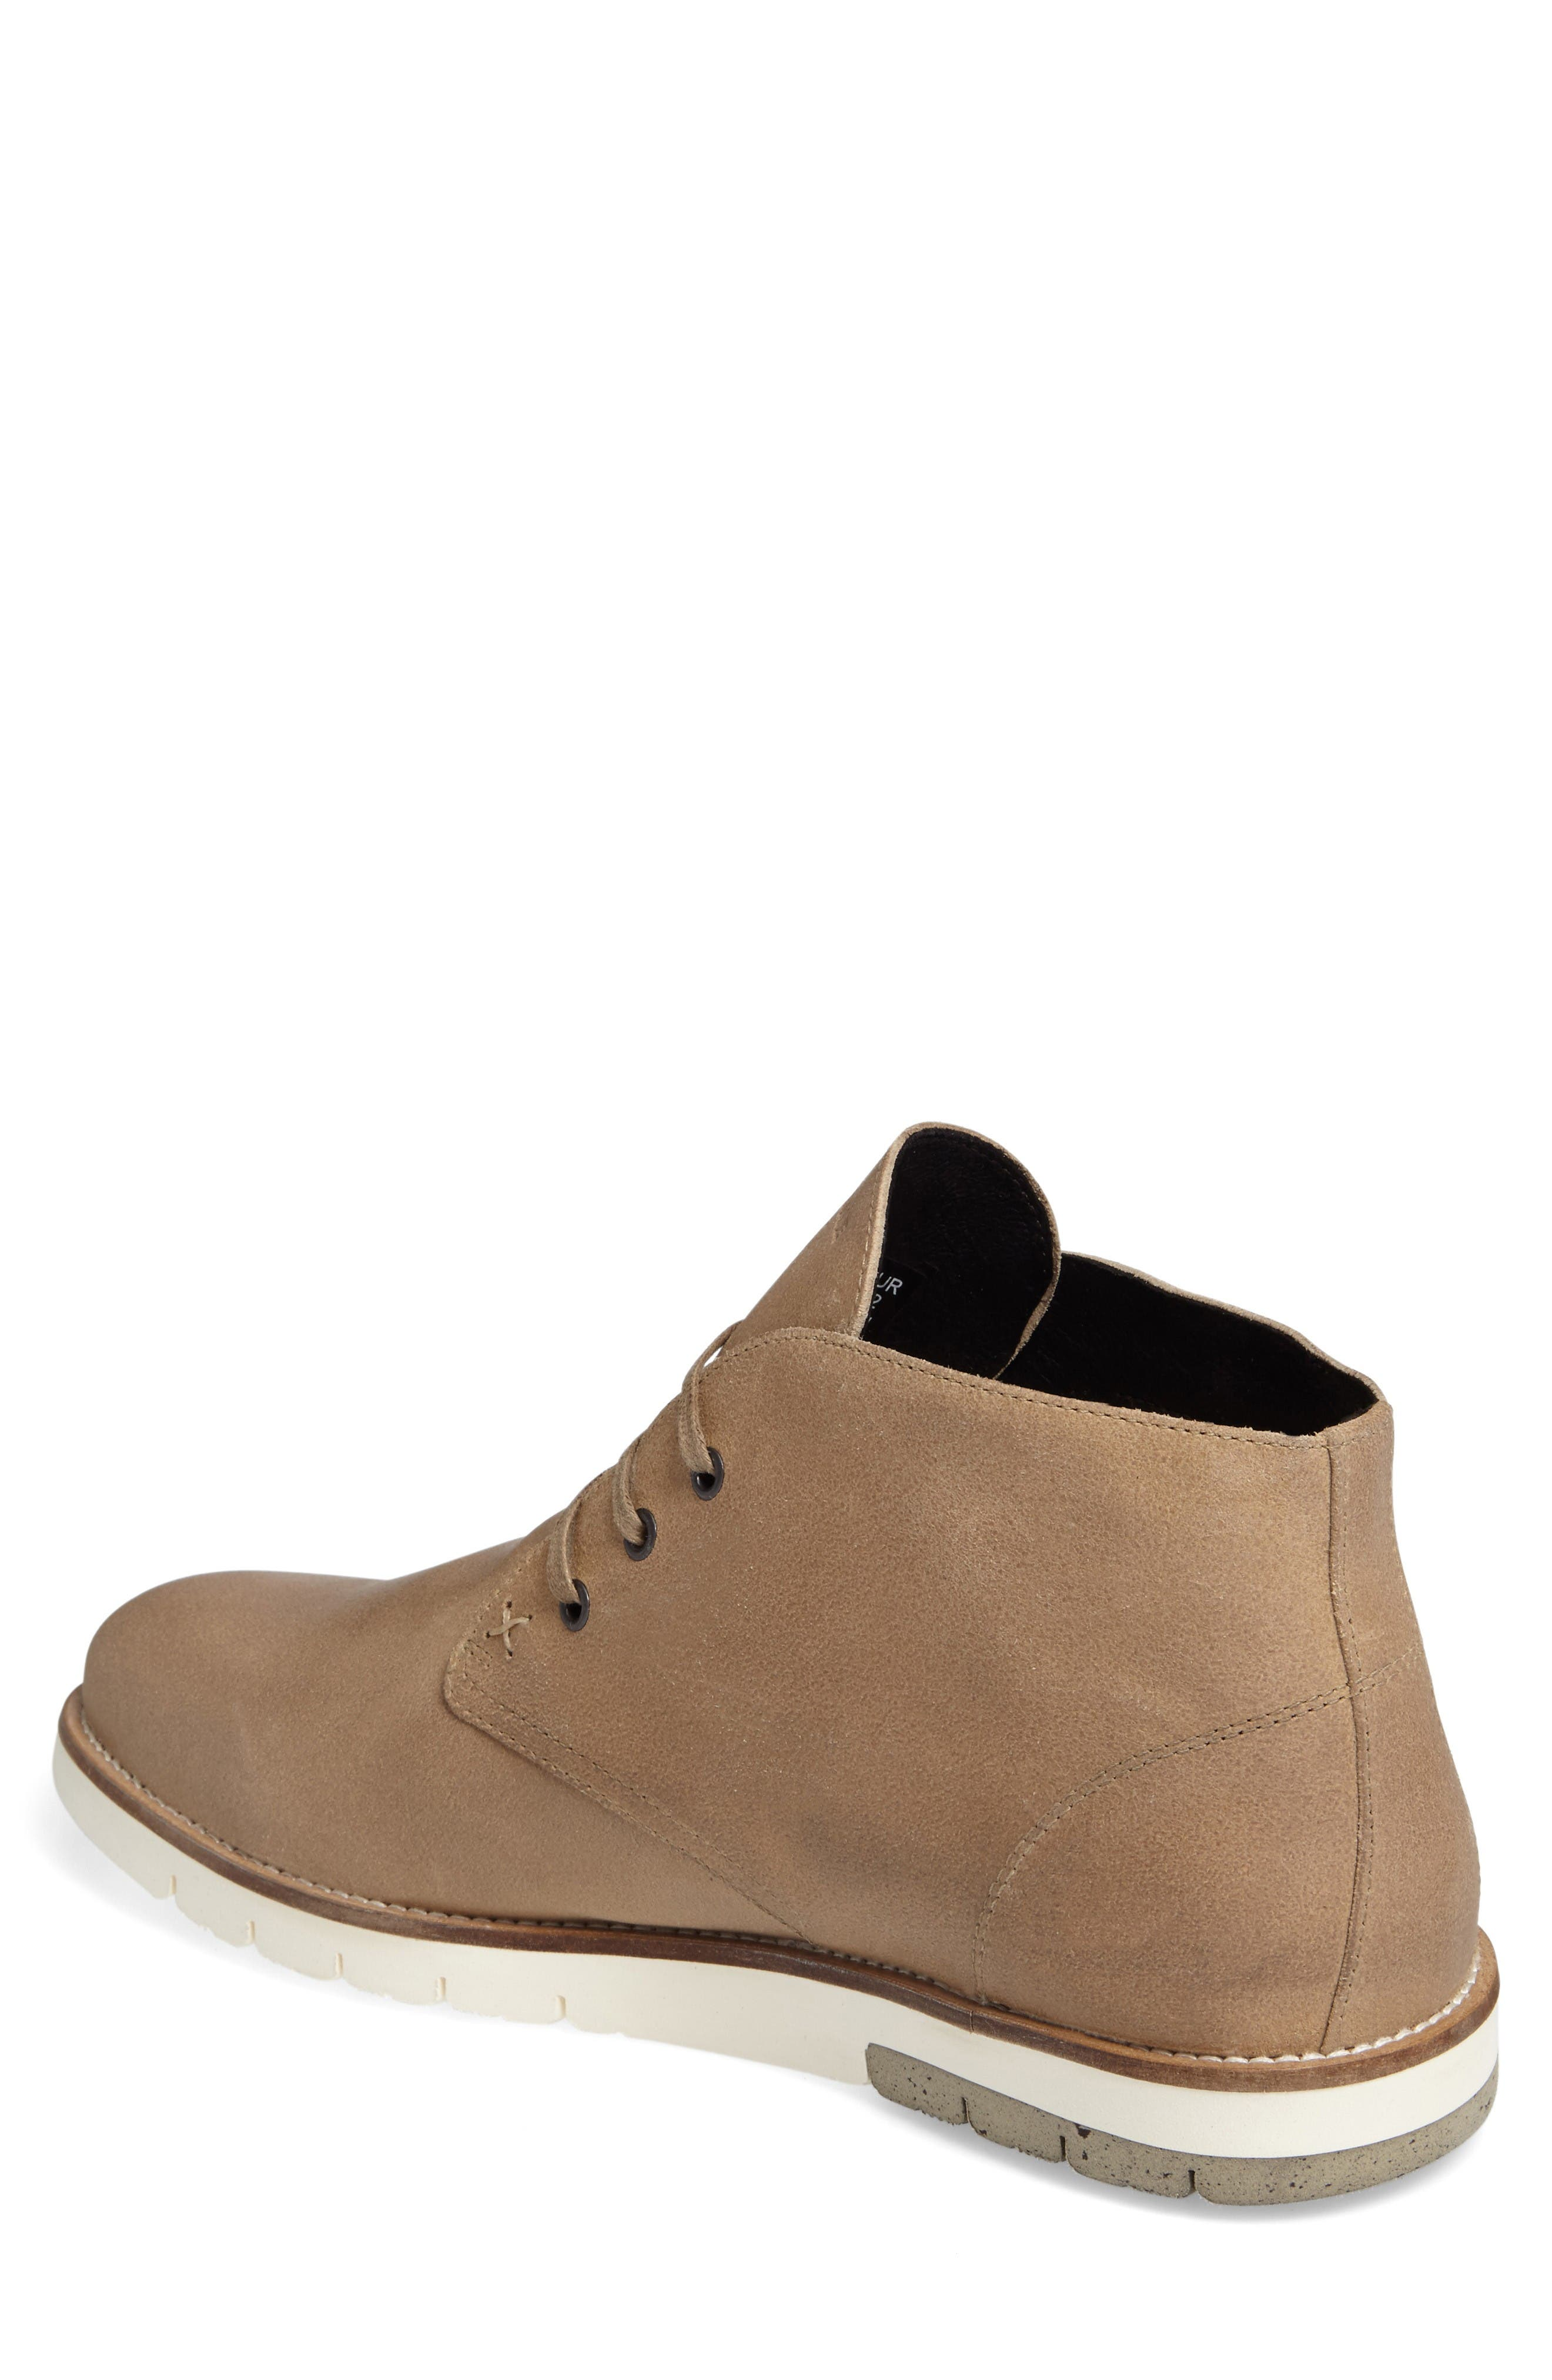 Gibson Chukka Boot,                             Alternate thumbnail 2, color,                             Stone Suede